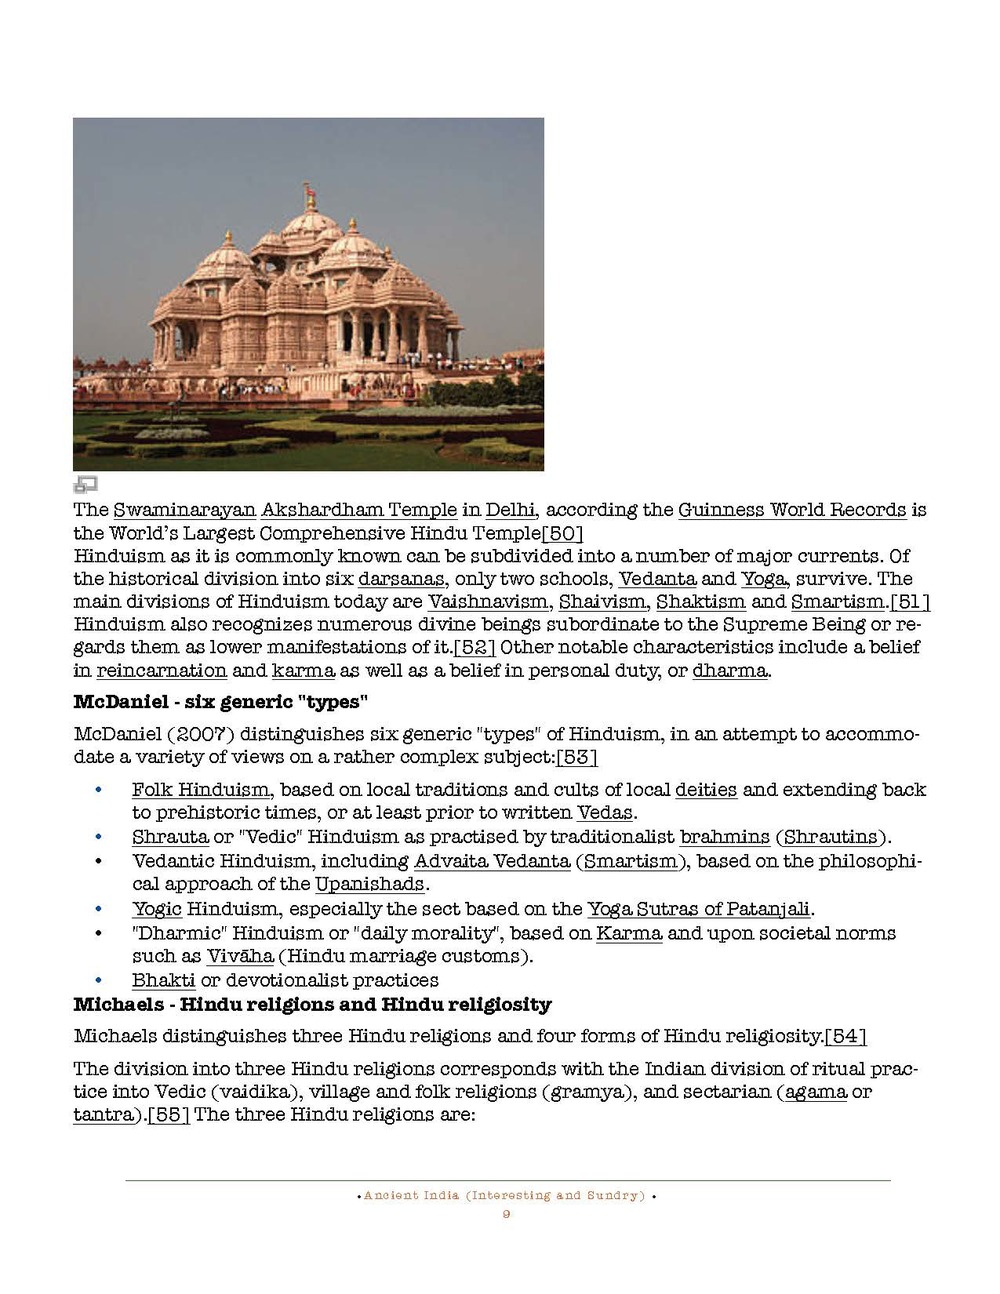 HOCE- Ancient India Notes (Other Interesting and Sundry)_Page_009.jpg